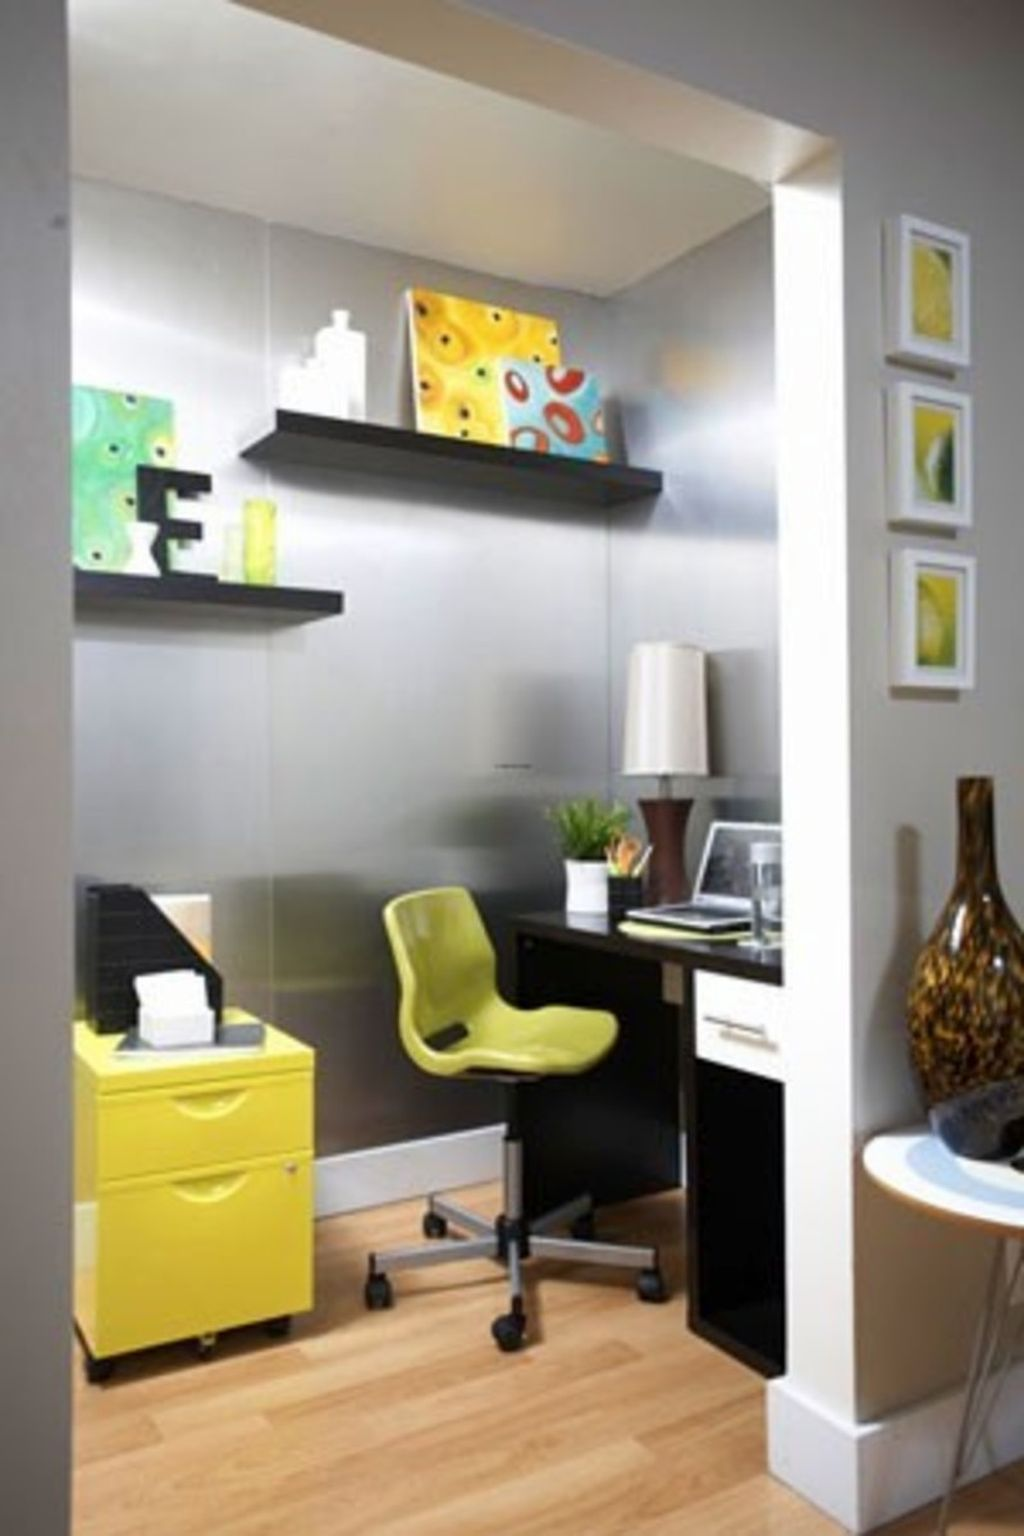 20 inspiring home office design ideas for small spaces for Room design ideas for small spaces